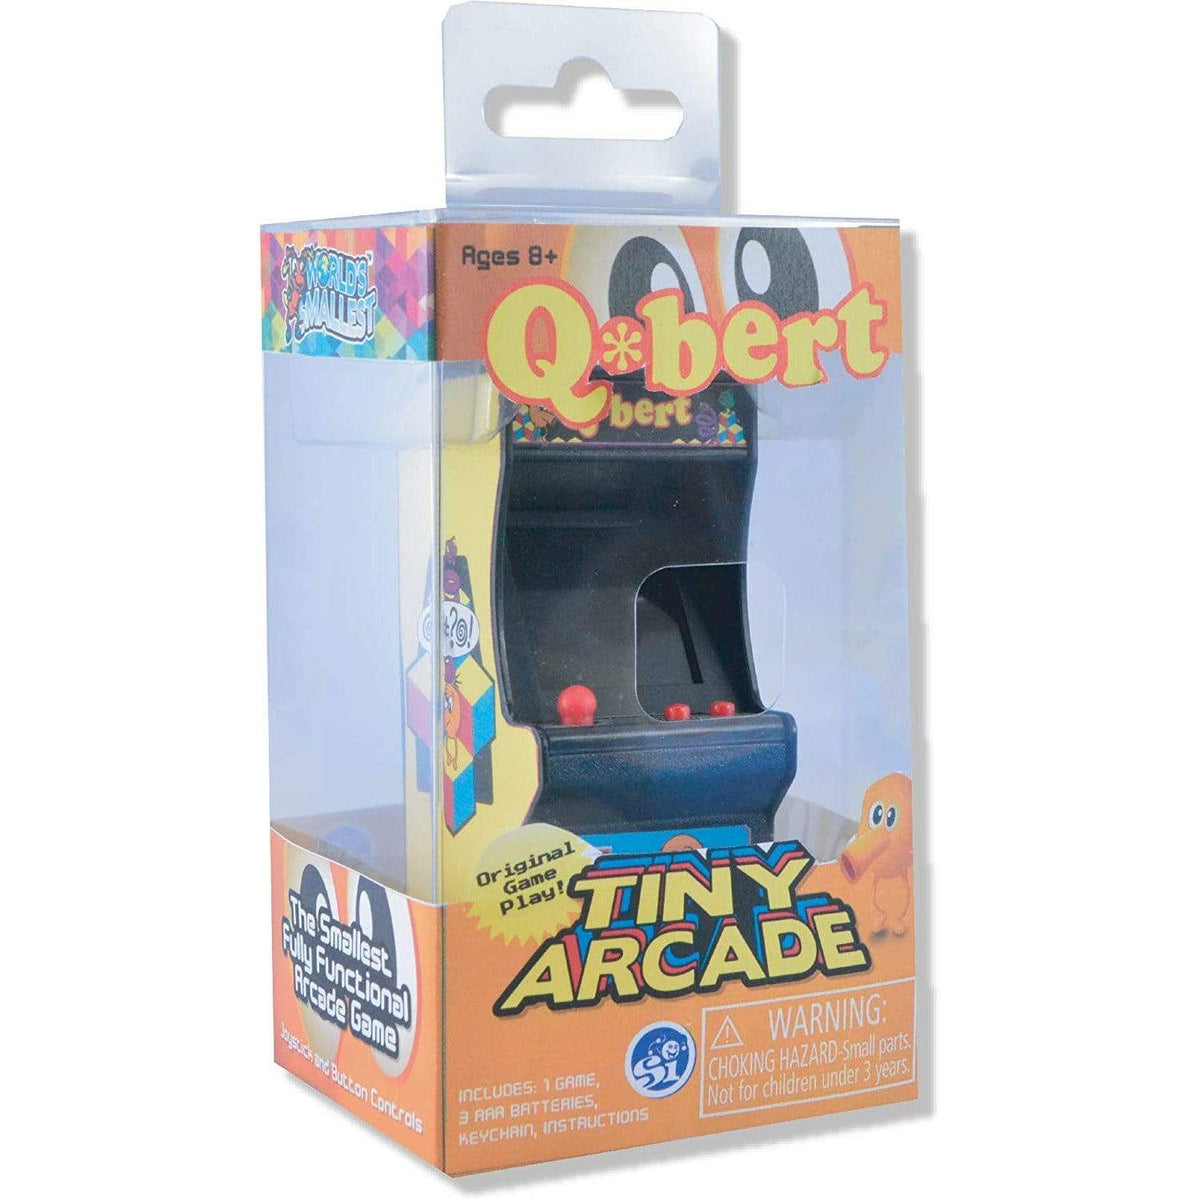 Tiny Arcade: Q*bert Super Impulse Tech Stuff